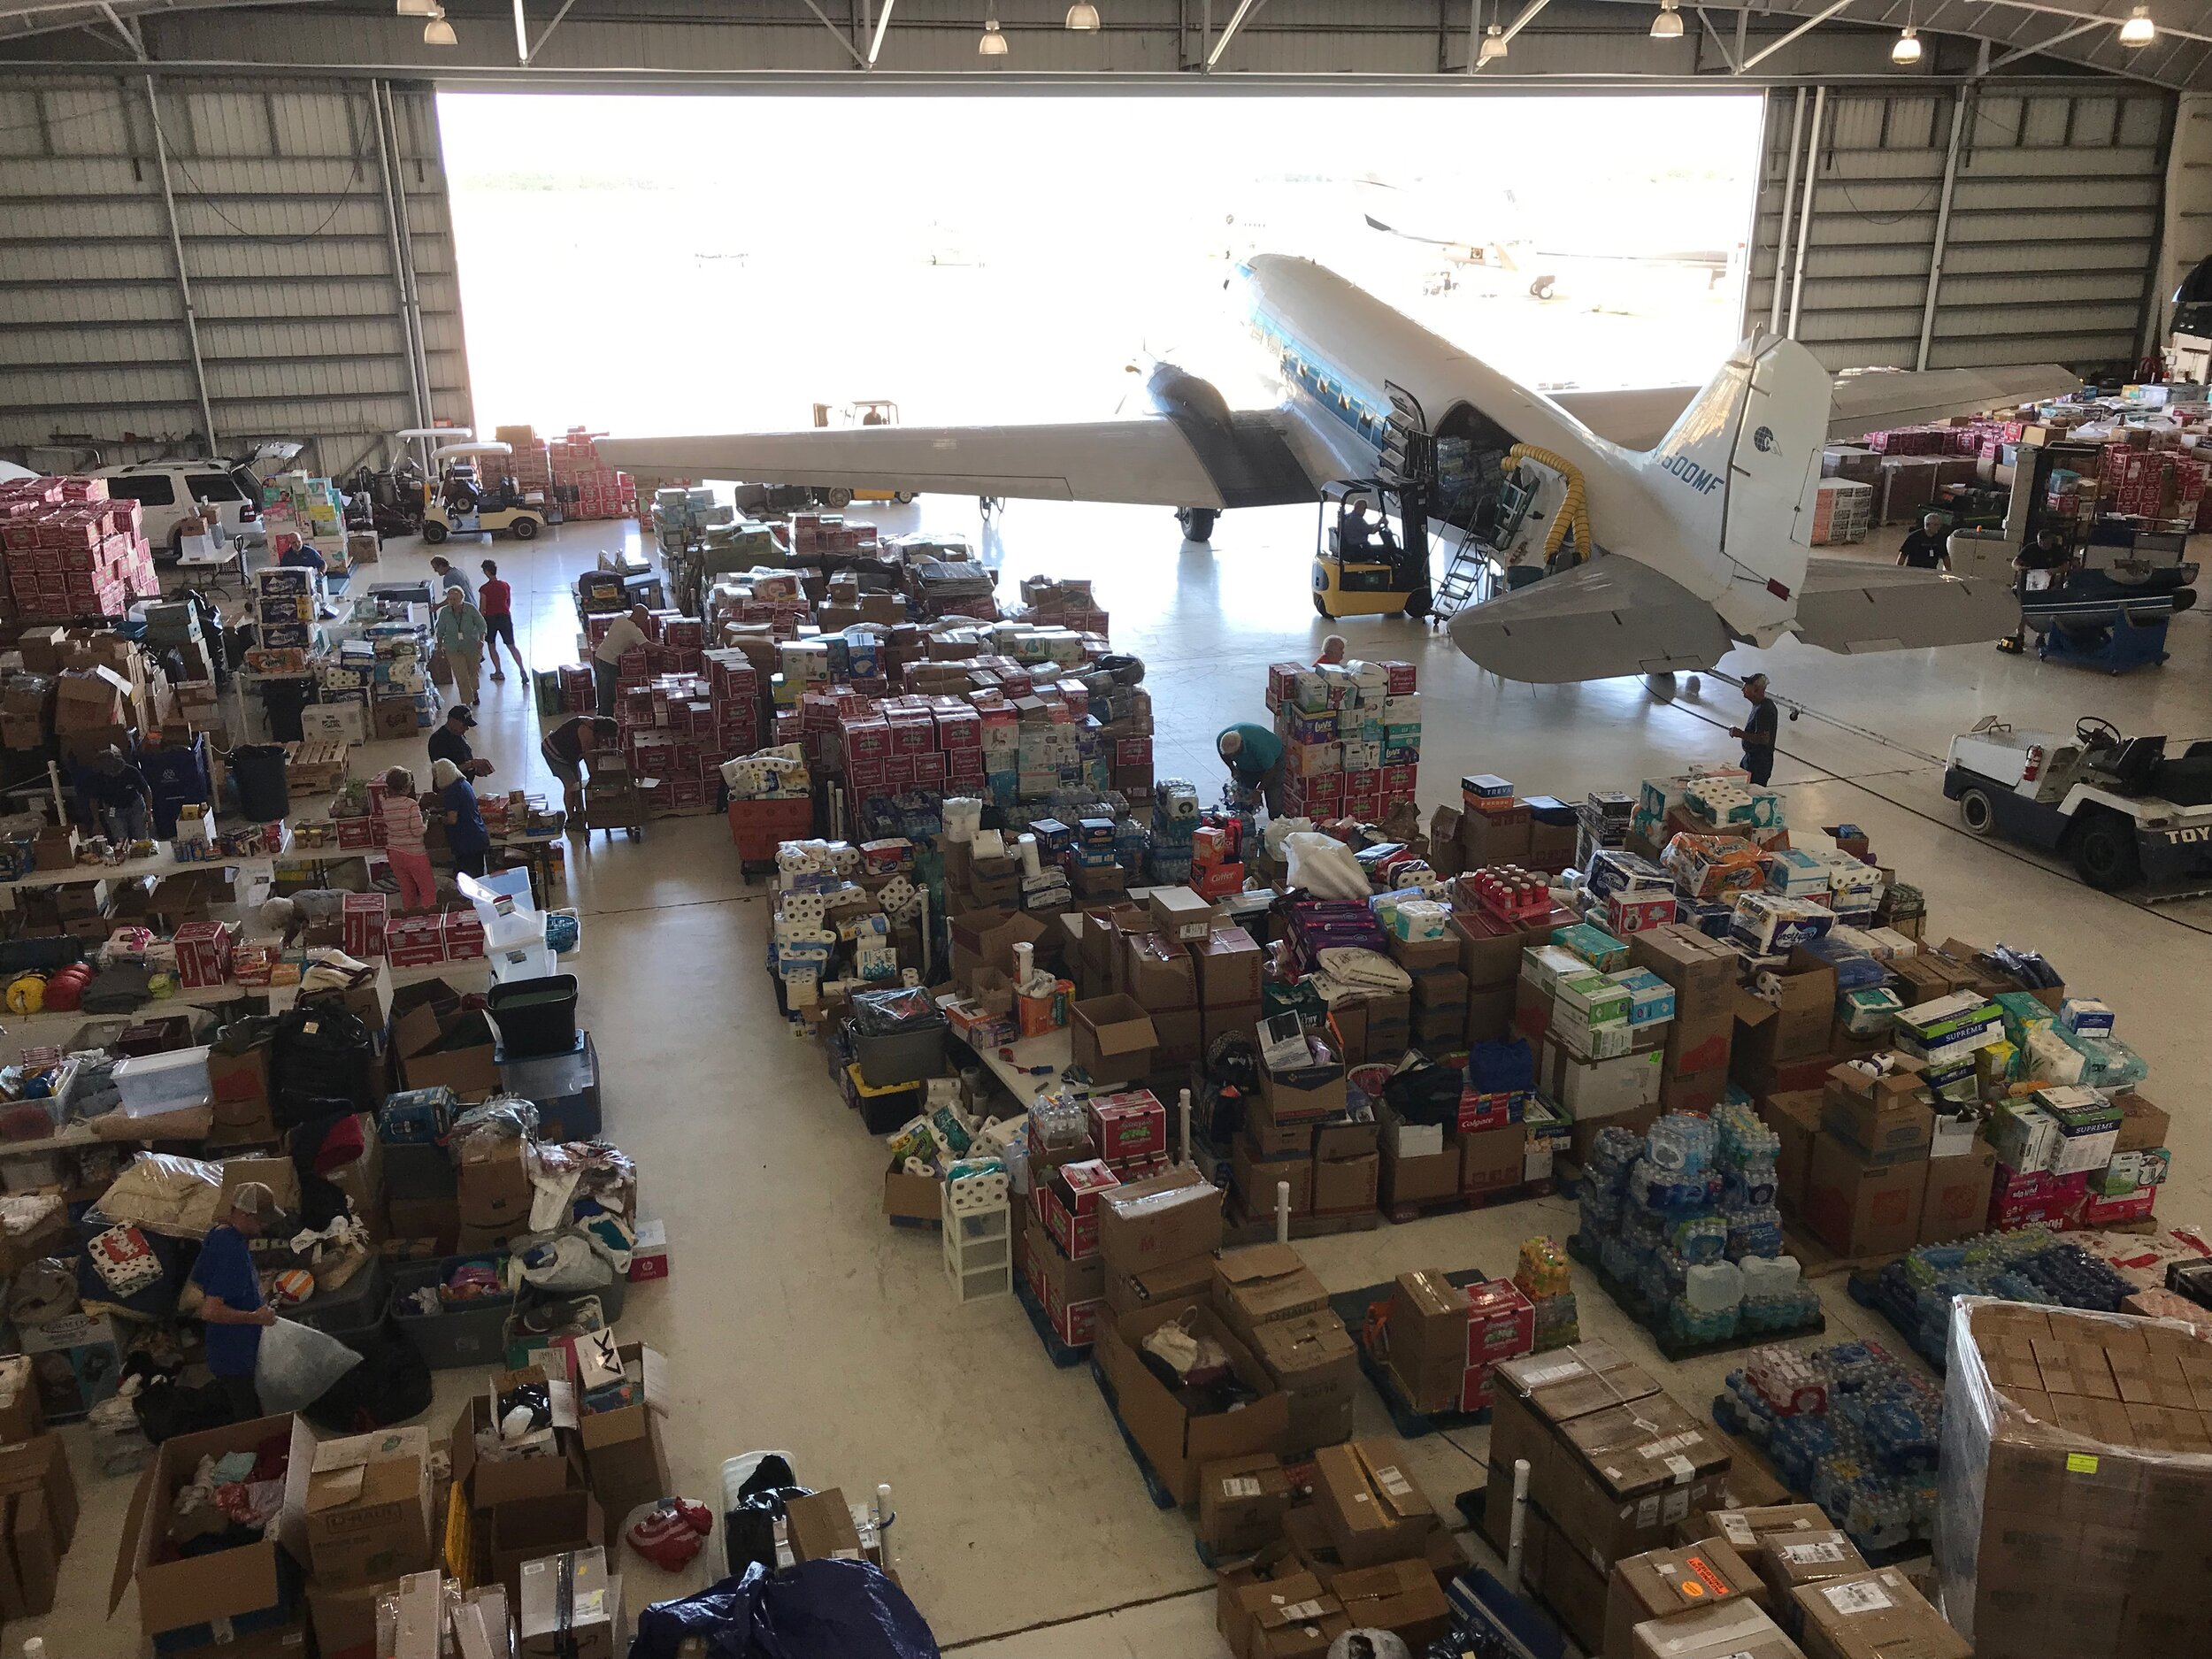 The Missionary Flights hangar in Fort Pierce, FL, took in over 300,000 pounds of supplies in two weeks.